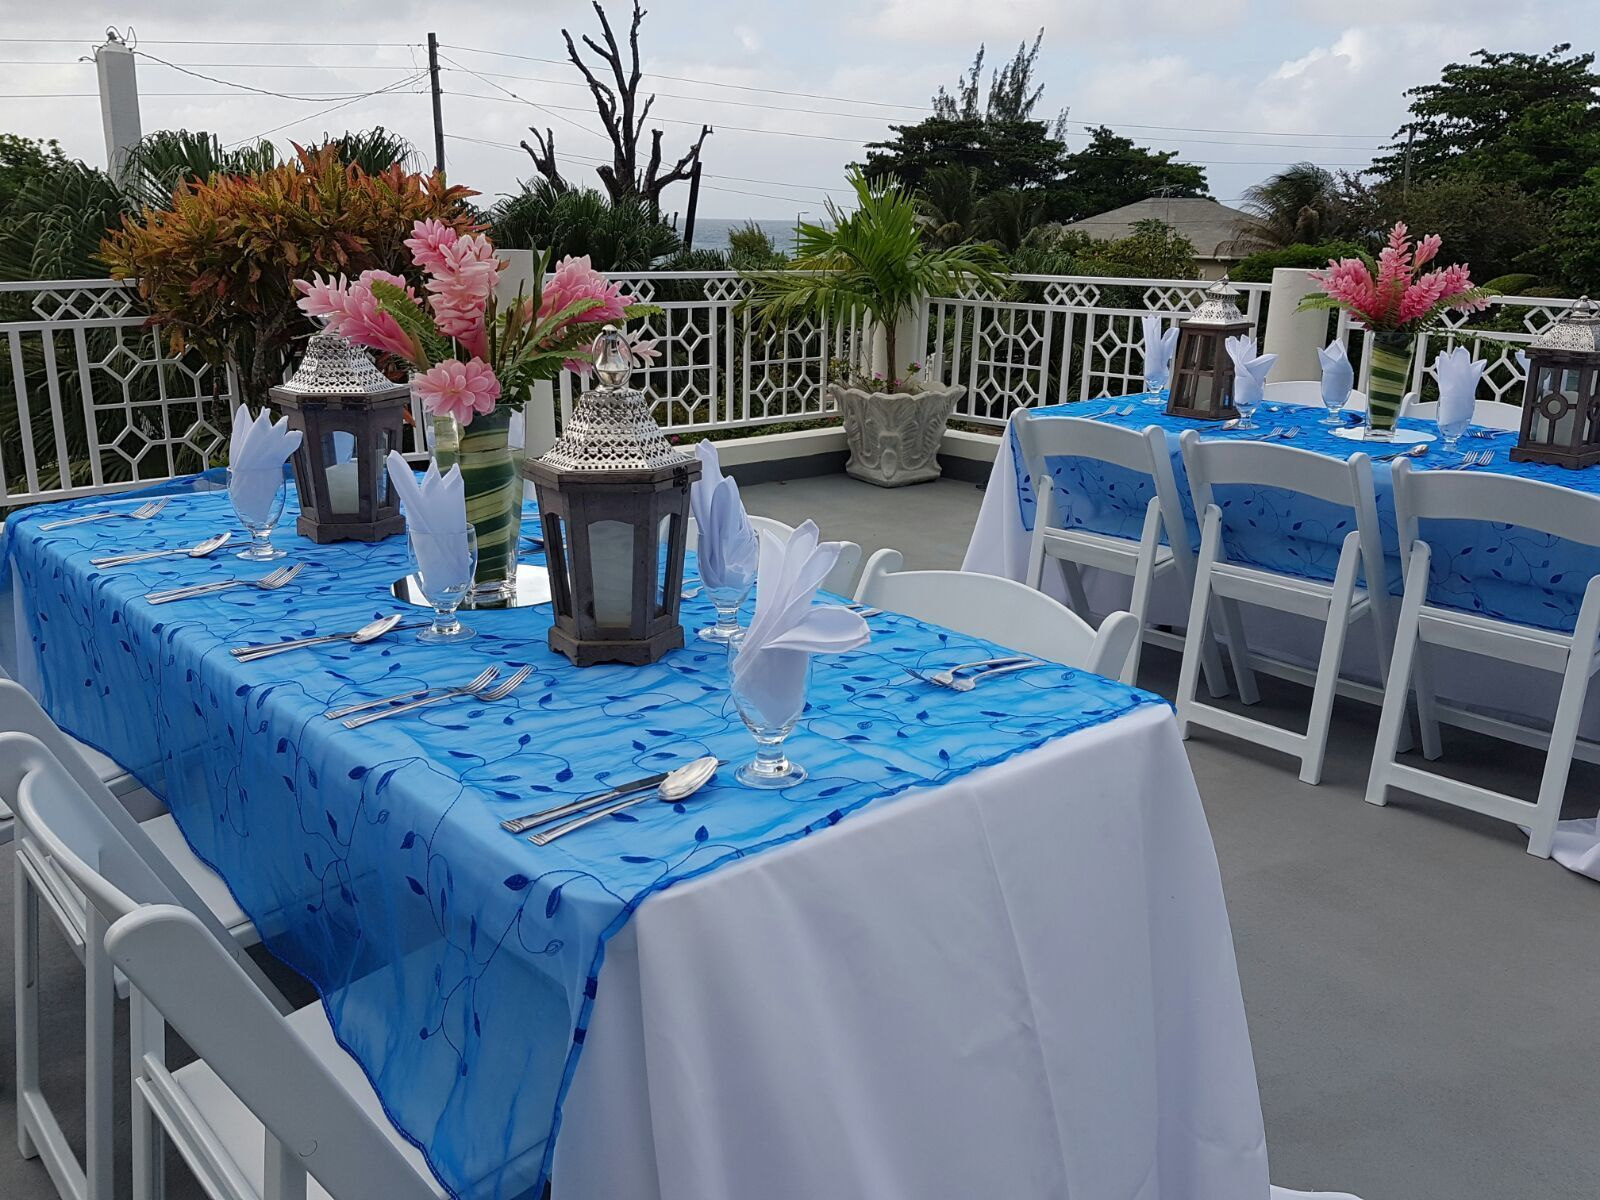 Best Of The Wedding Villas In Jamaica Mais Oui Villa In Discovery Bay